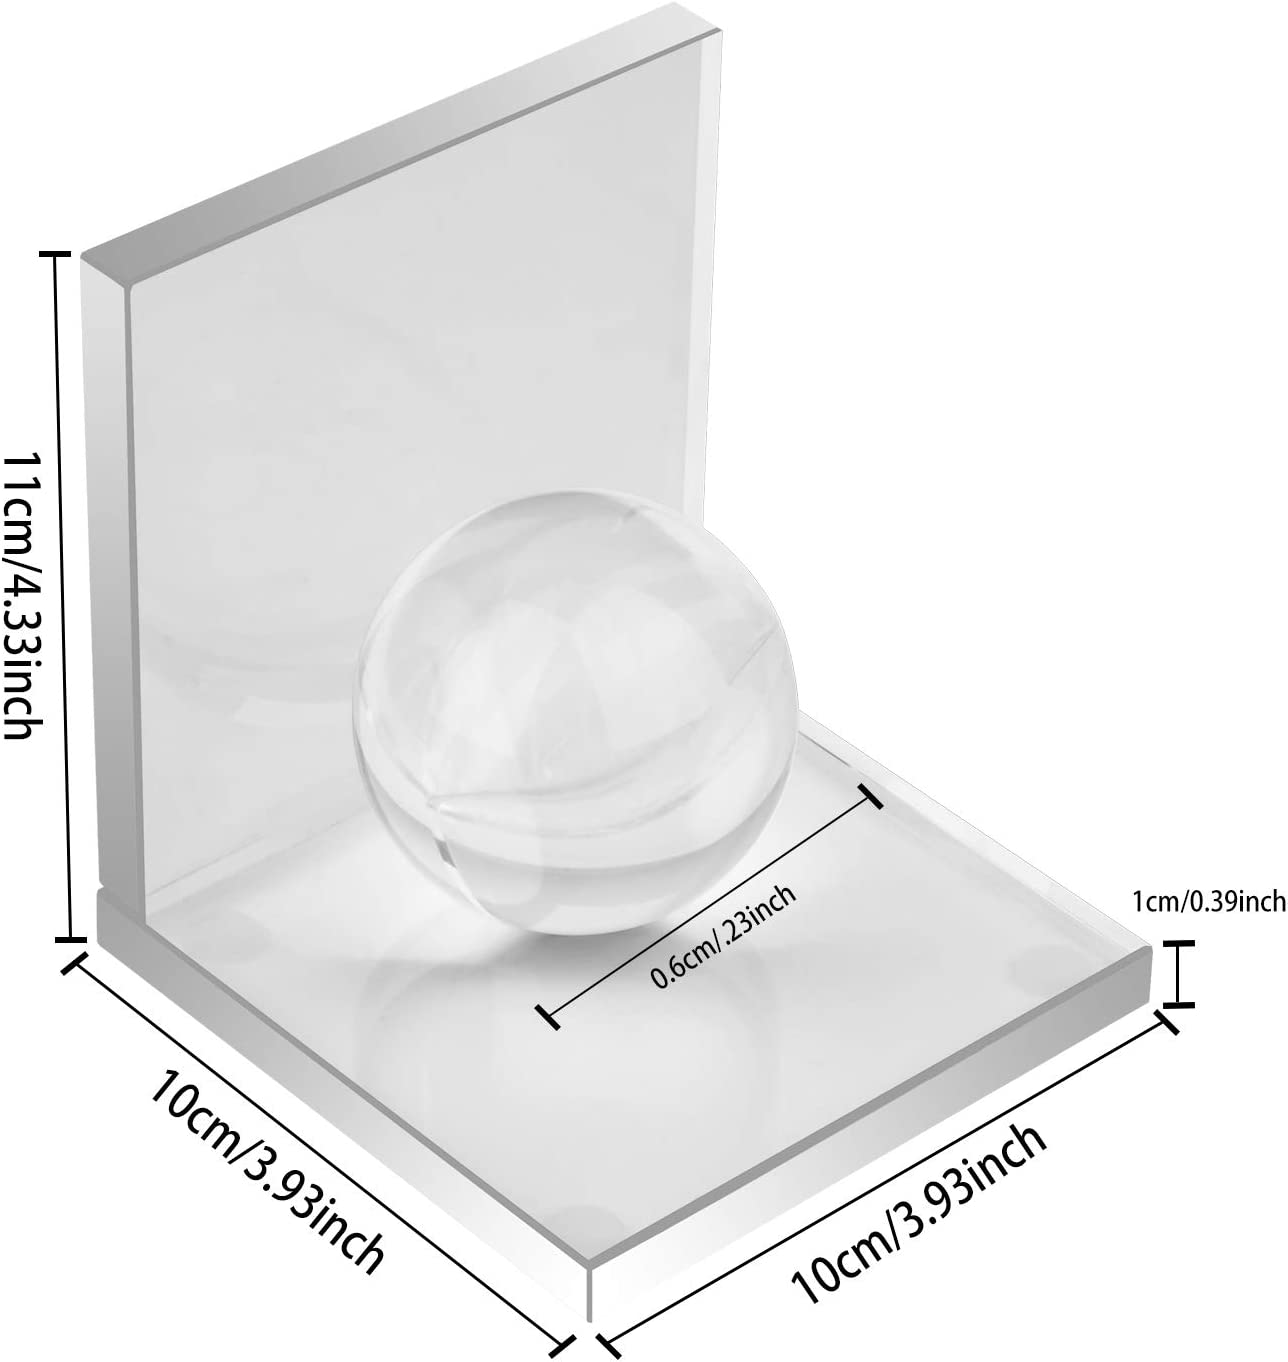 Decorative Ornaments A Special Gift 1 Pair L Shape Non Skid Sturdy Crystal Bookends for Heavy Books School Library MerryNine Innovative Crystal Bookends with Crystal Ball Bookshelf Office